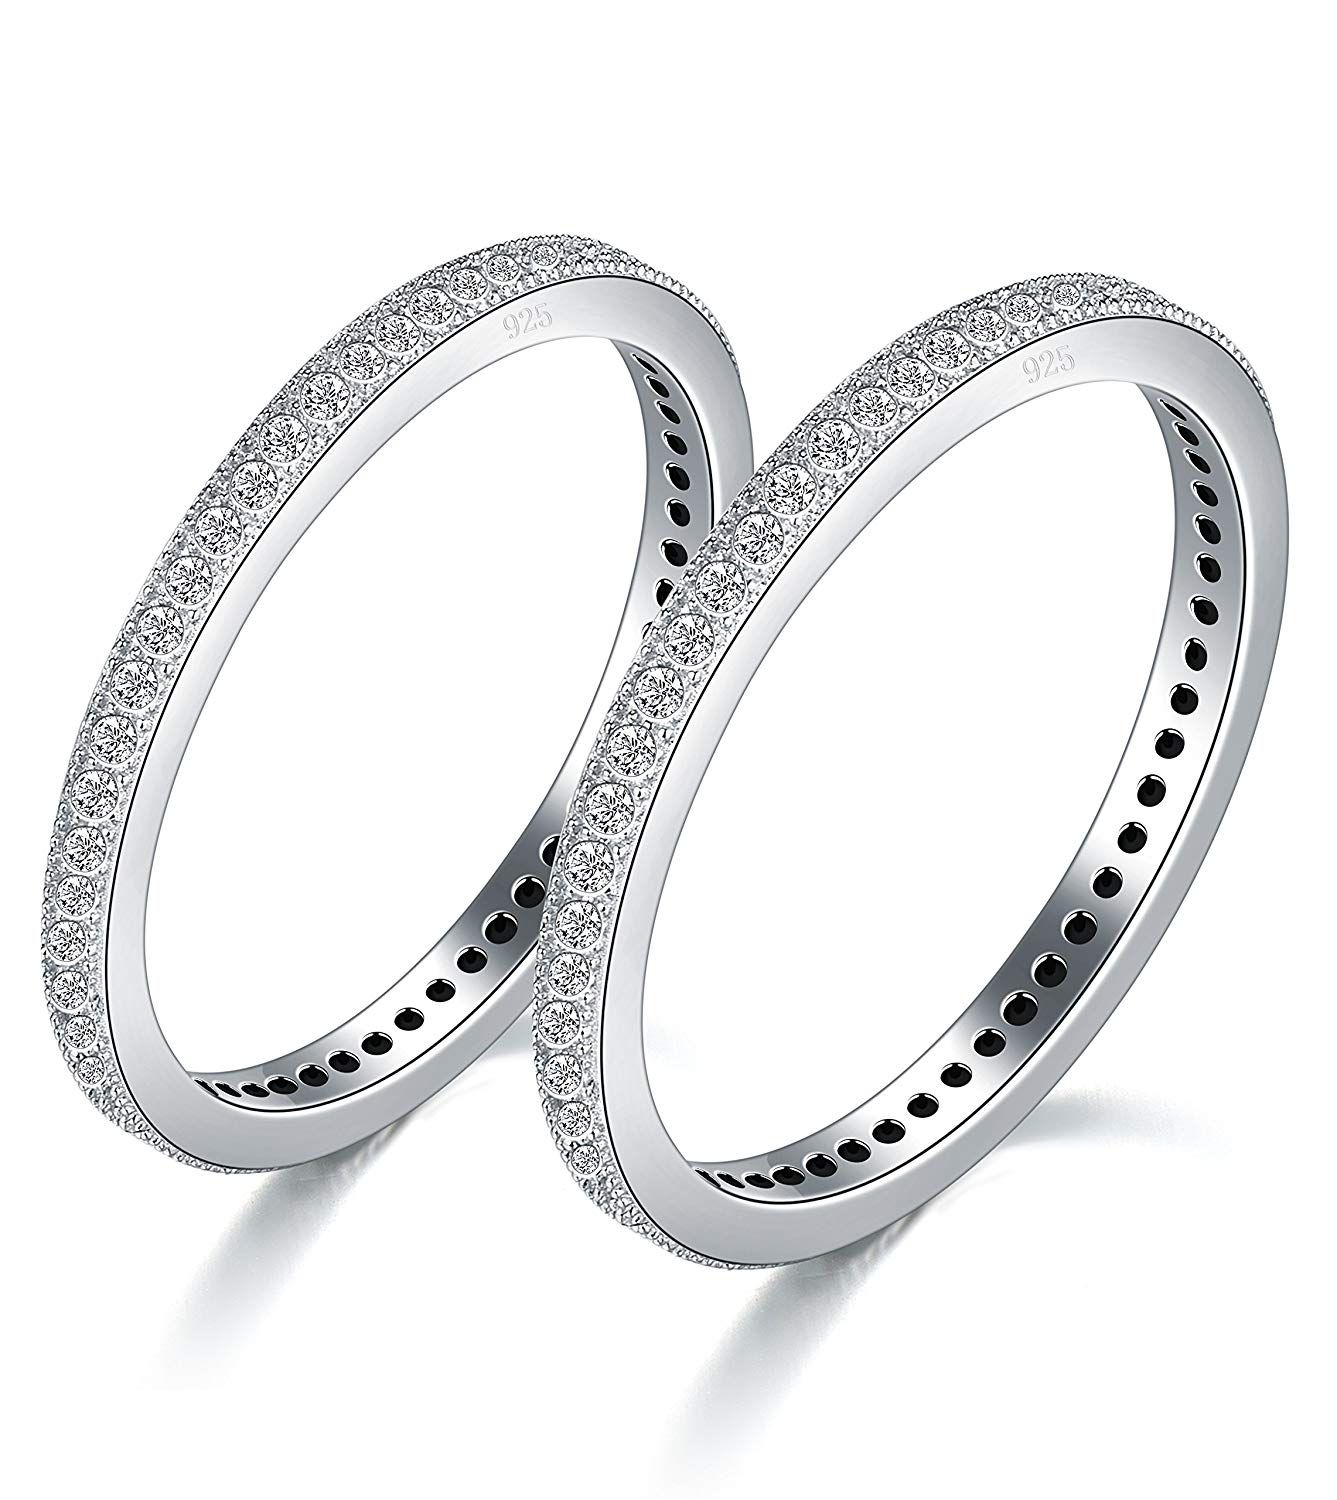 BORUO 2MM 925 Sterling Silver Ring, Cubic Zirconia CZ